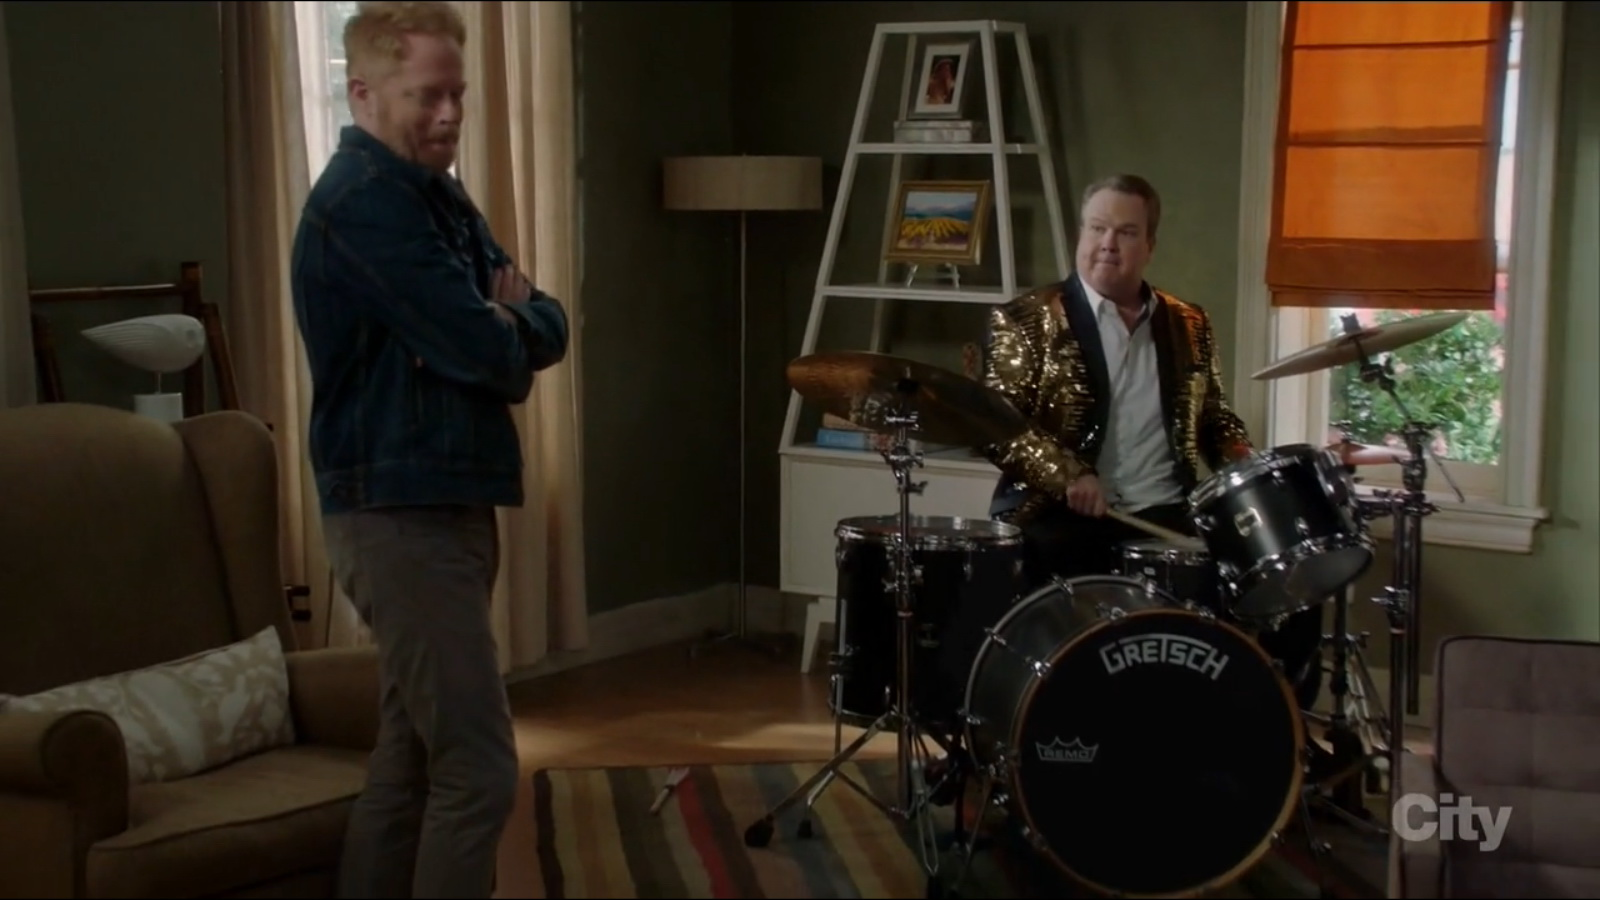 gretsch drums used by eric stonestreet in modern family